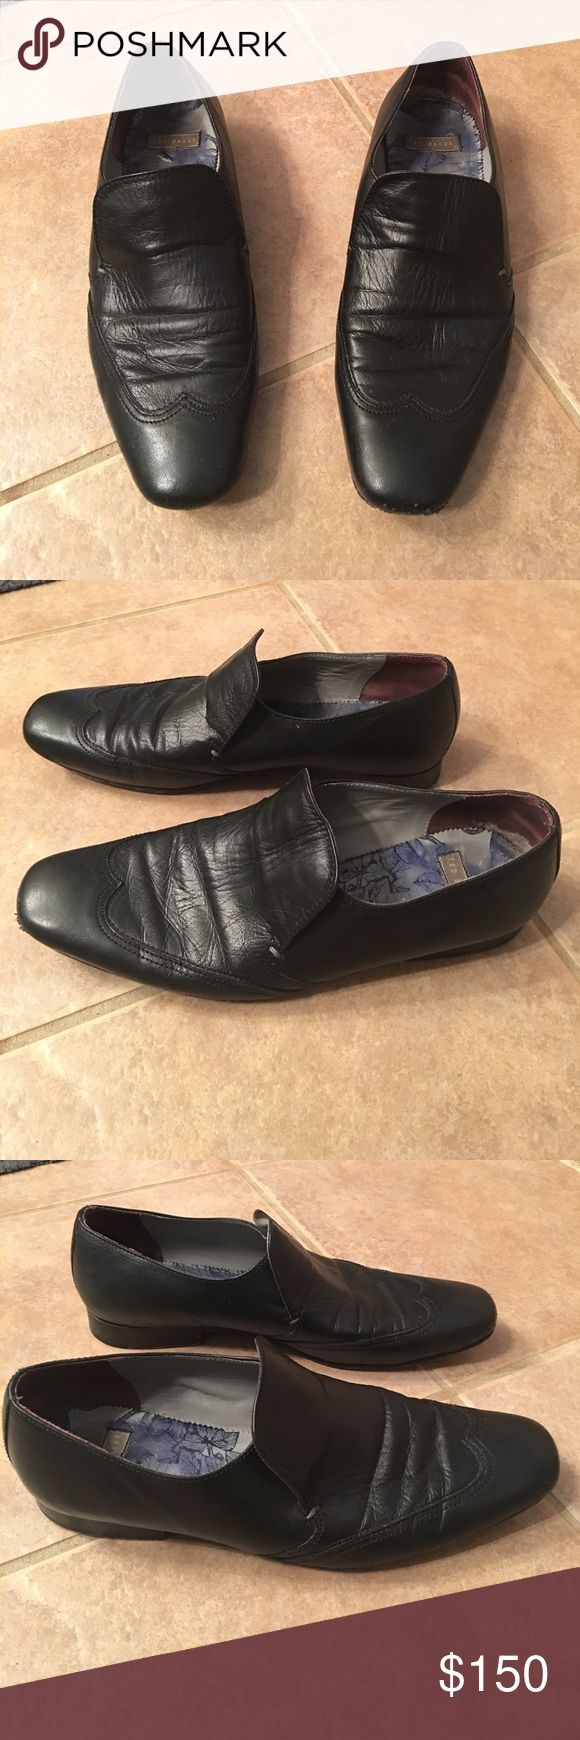 Ted Baker men's slip on loafers GUC with imperfections as pictured Ted Baker Shoes Loafers & Slip-Ons